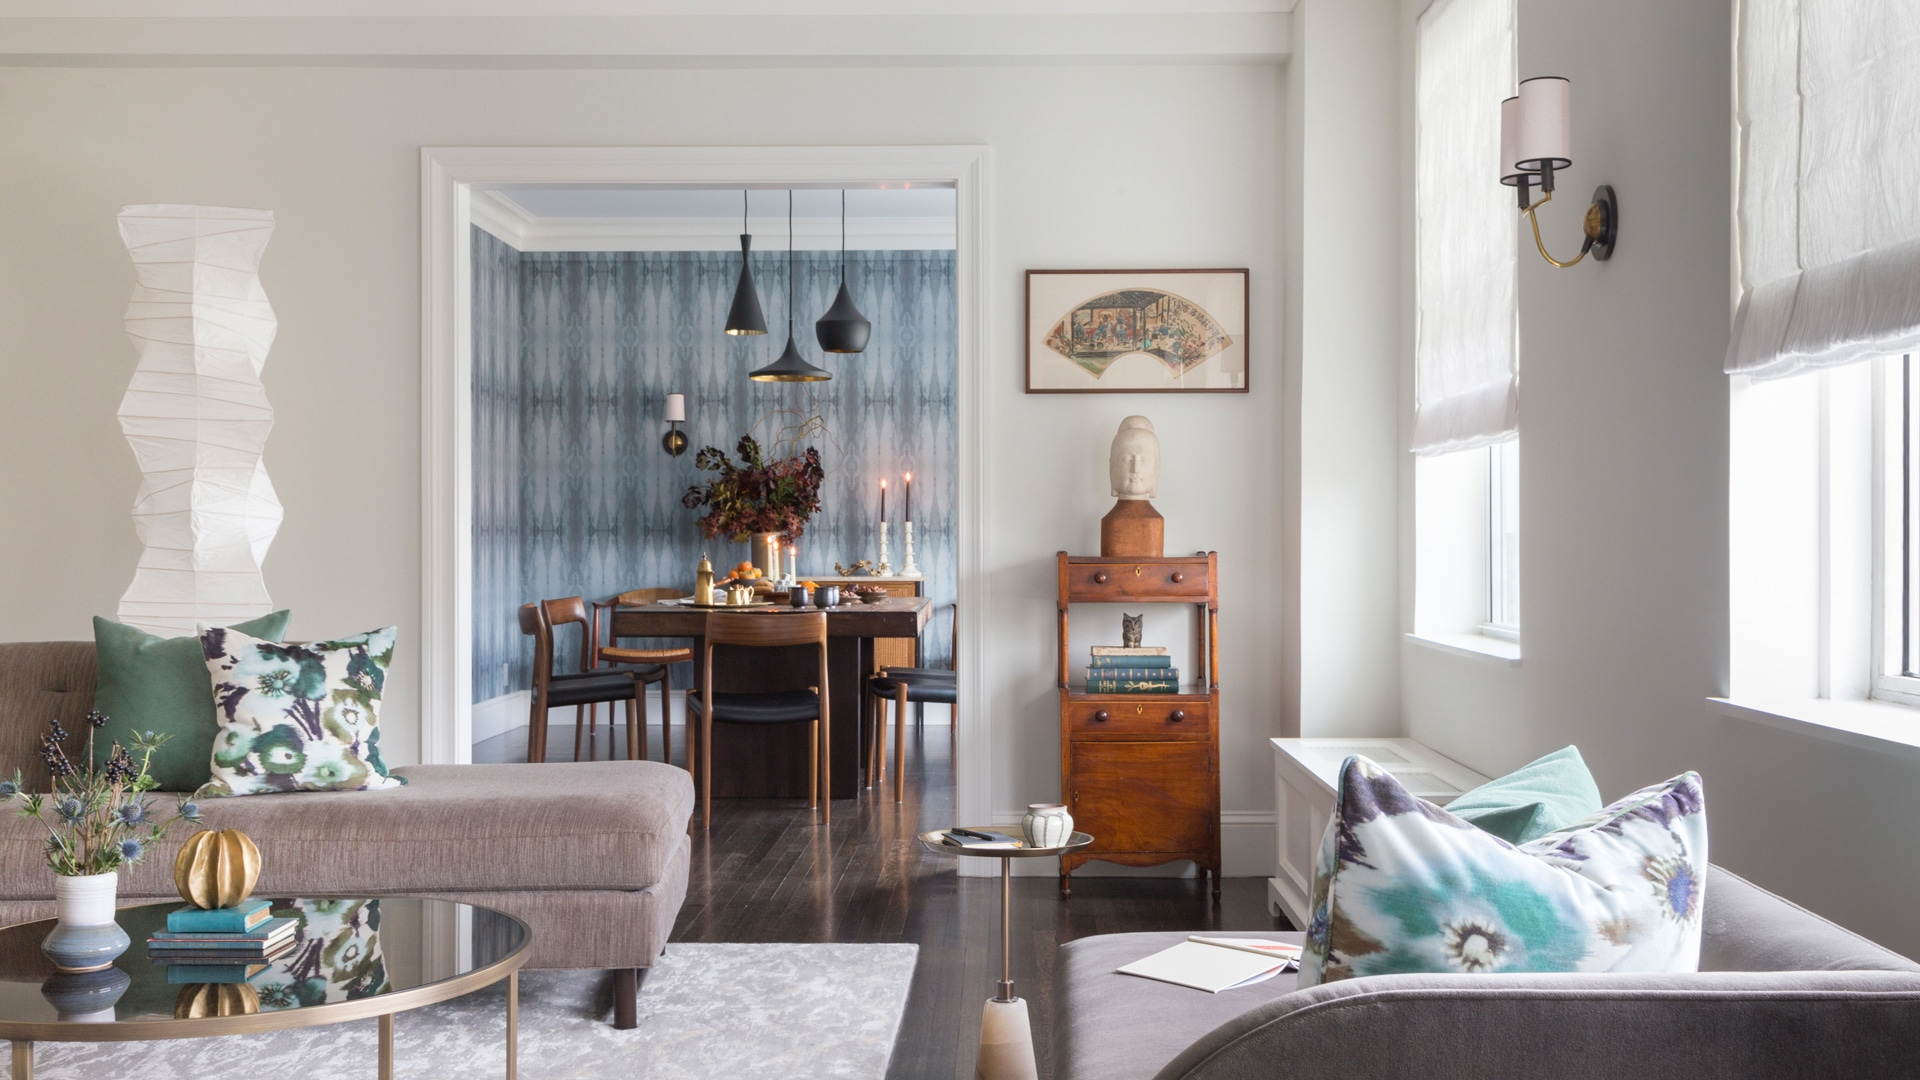 Brooklyn heights apartment ben herzog architect pc for 2 montague terrace brooklyn heights